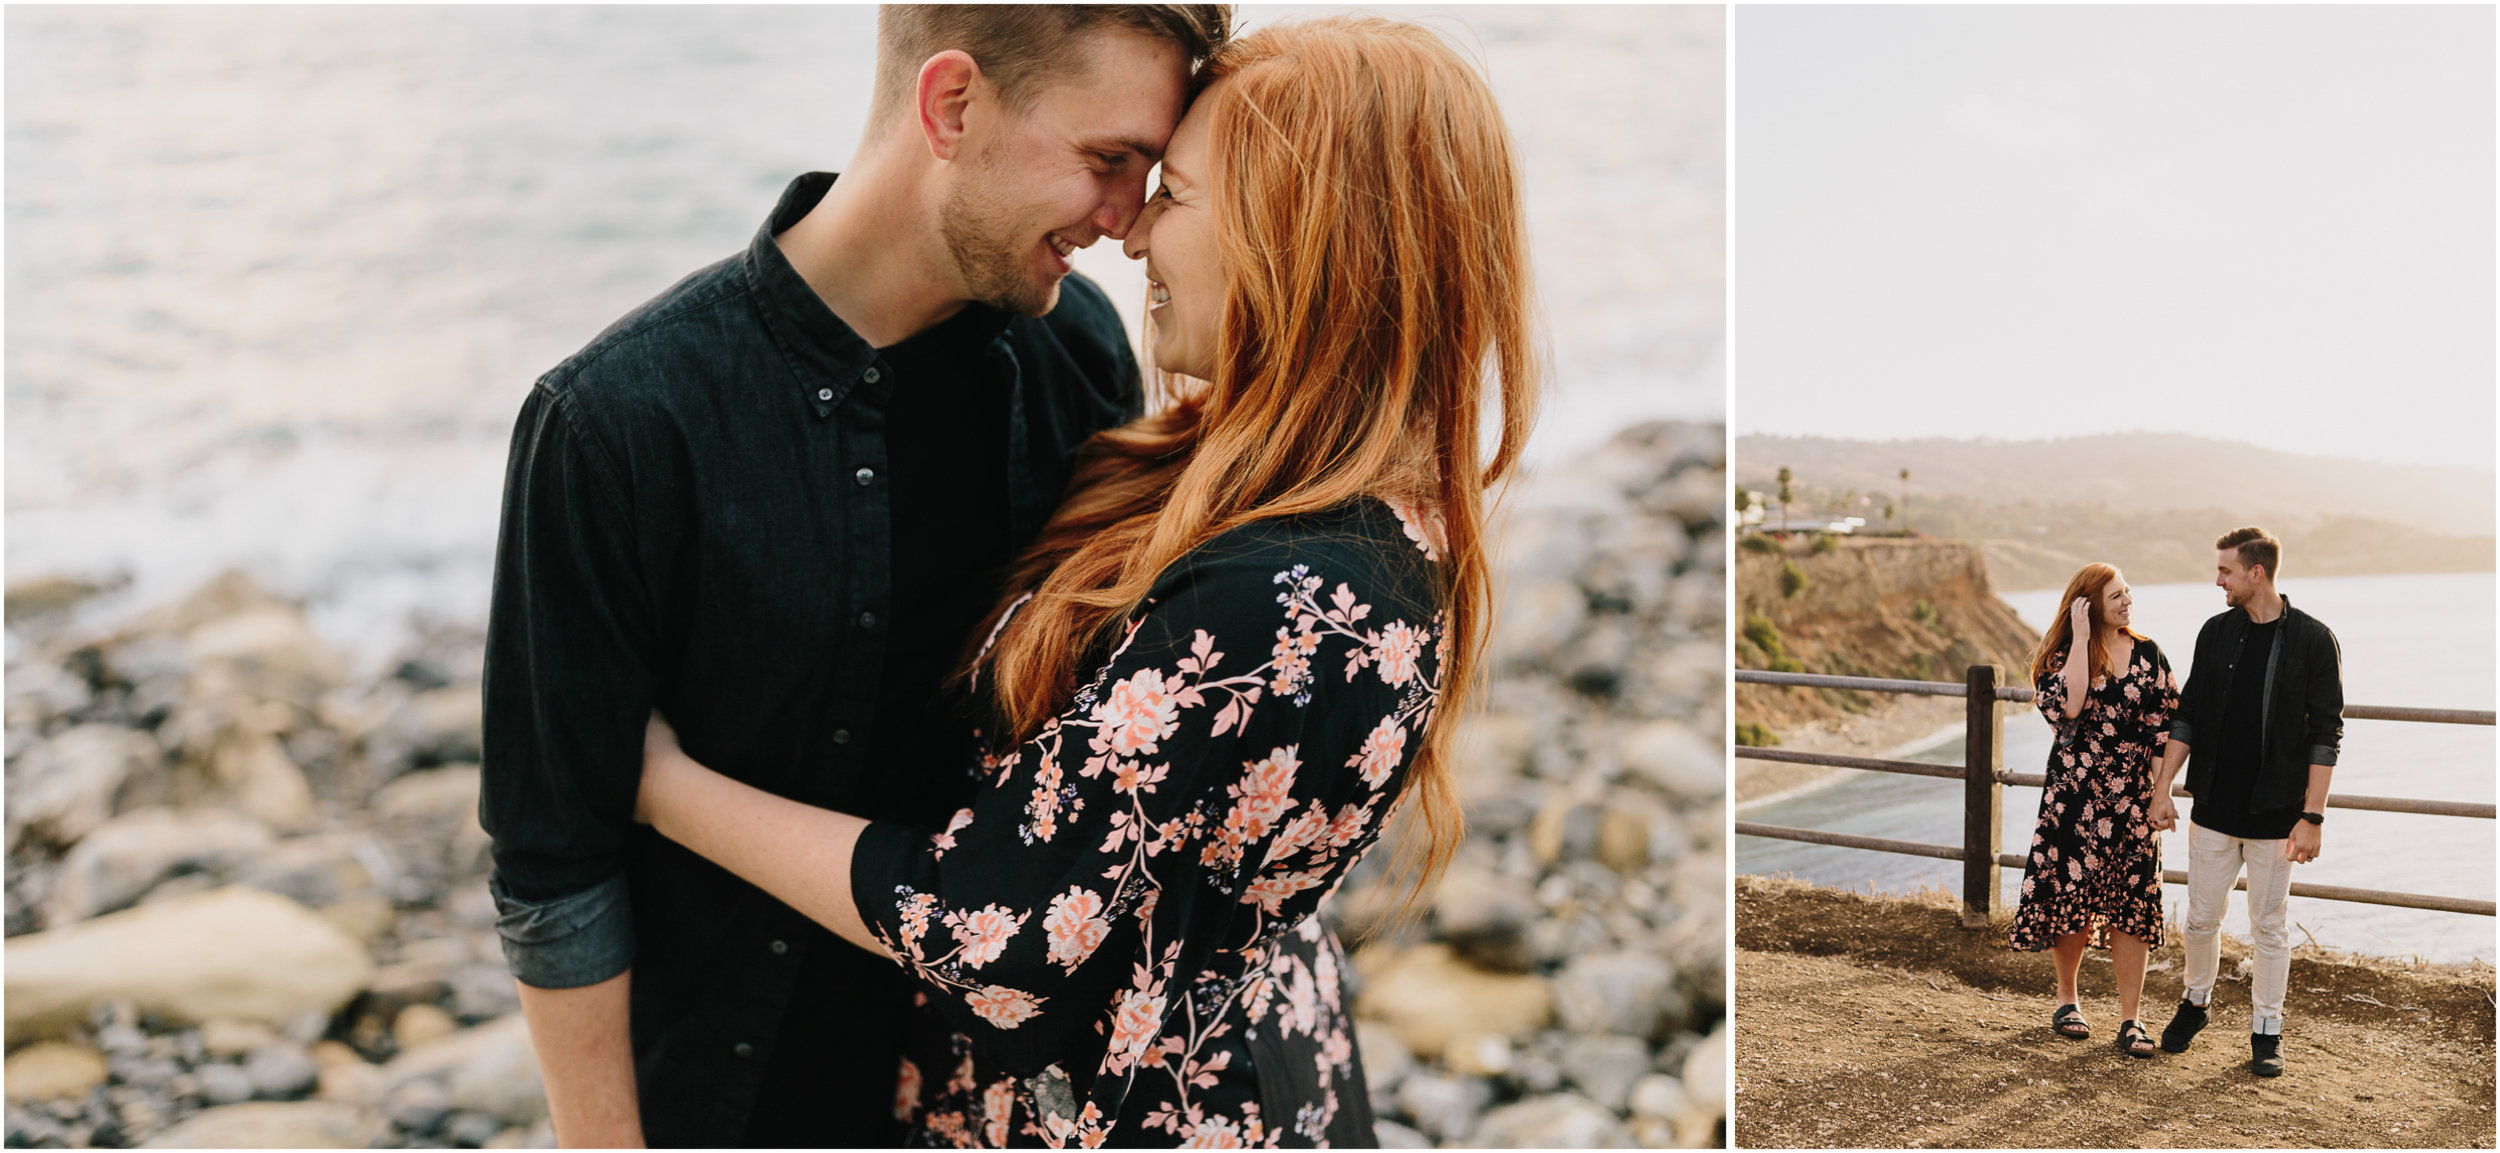 alyssa barletter photography terranea cove resort california sunrise anniversary engagement-101.jpg